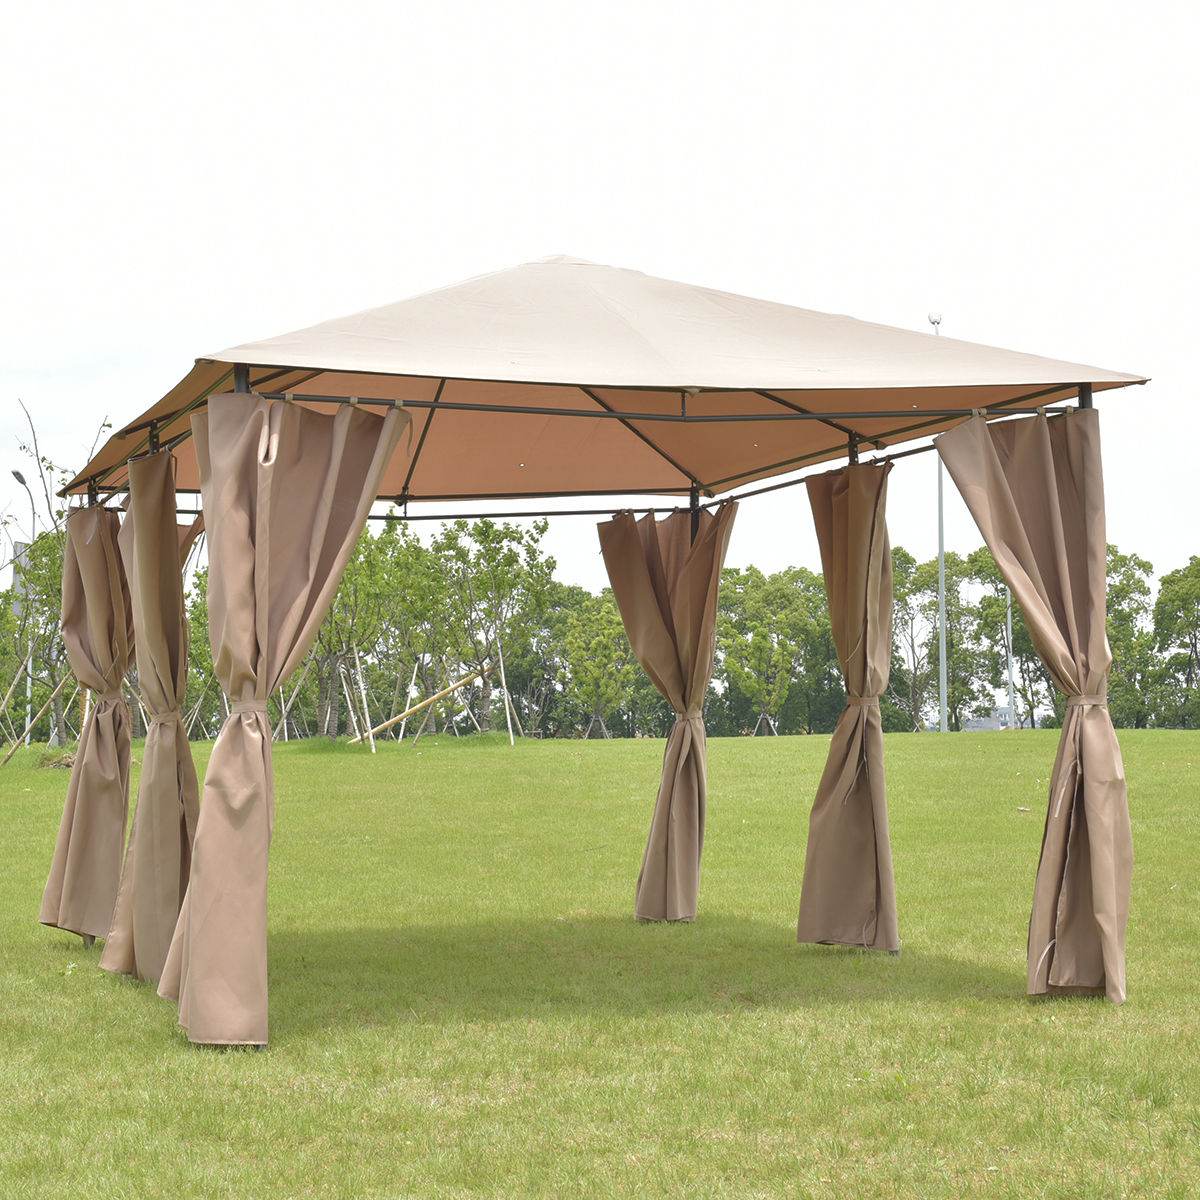 Goplus Outdoor 10 'x13 'gazebo Canopy Tent Shelter Awning Steel Frame Garden Party